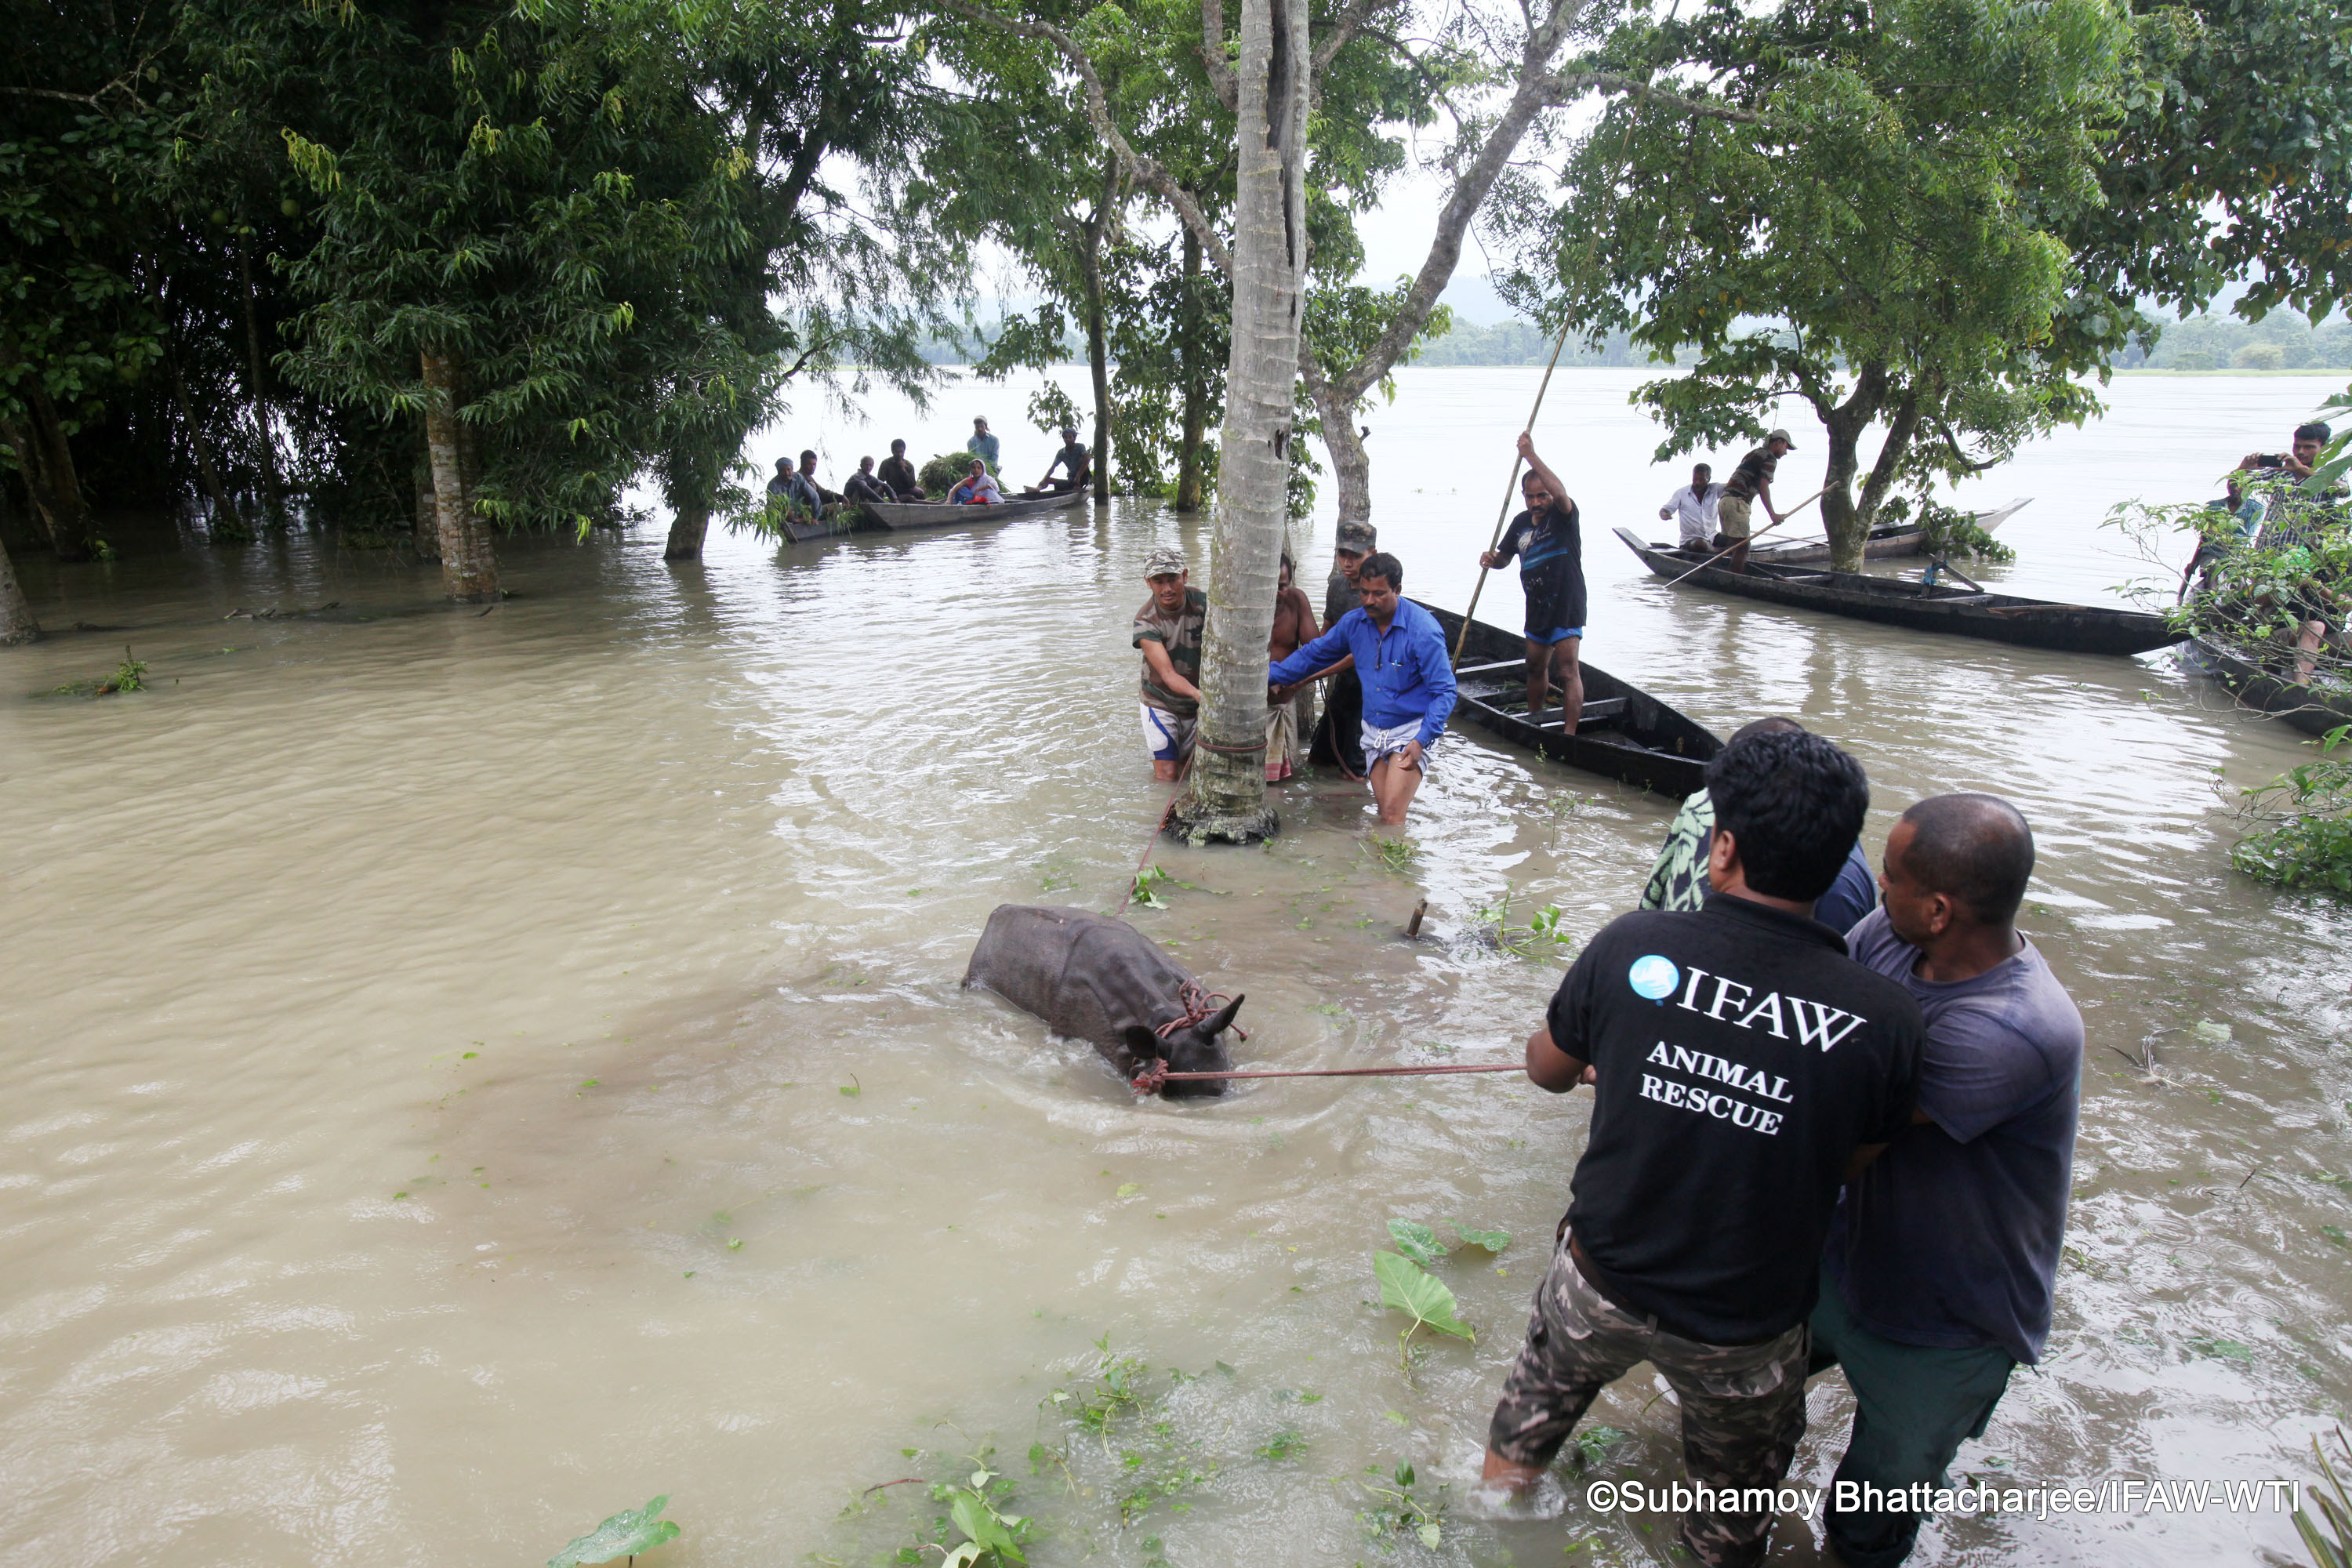 Kaziranga_27 jul 2016_flood status_rhino rescue_Subhamoy Bhattacharjee_IFAW-WTI (19)